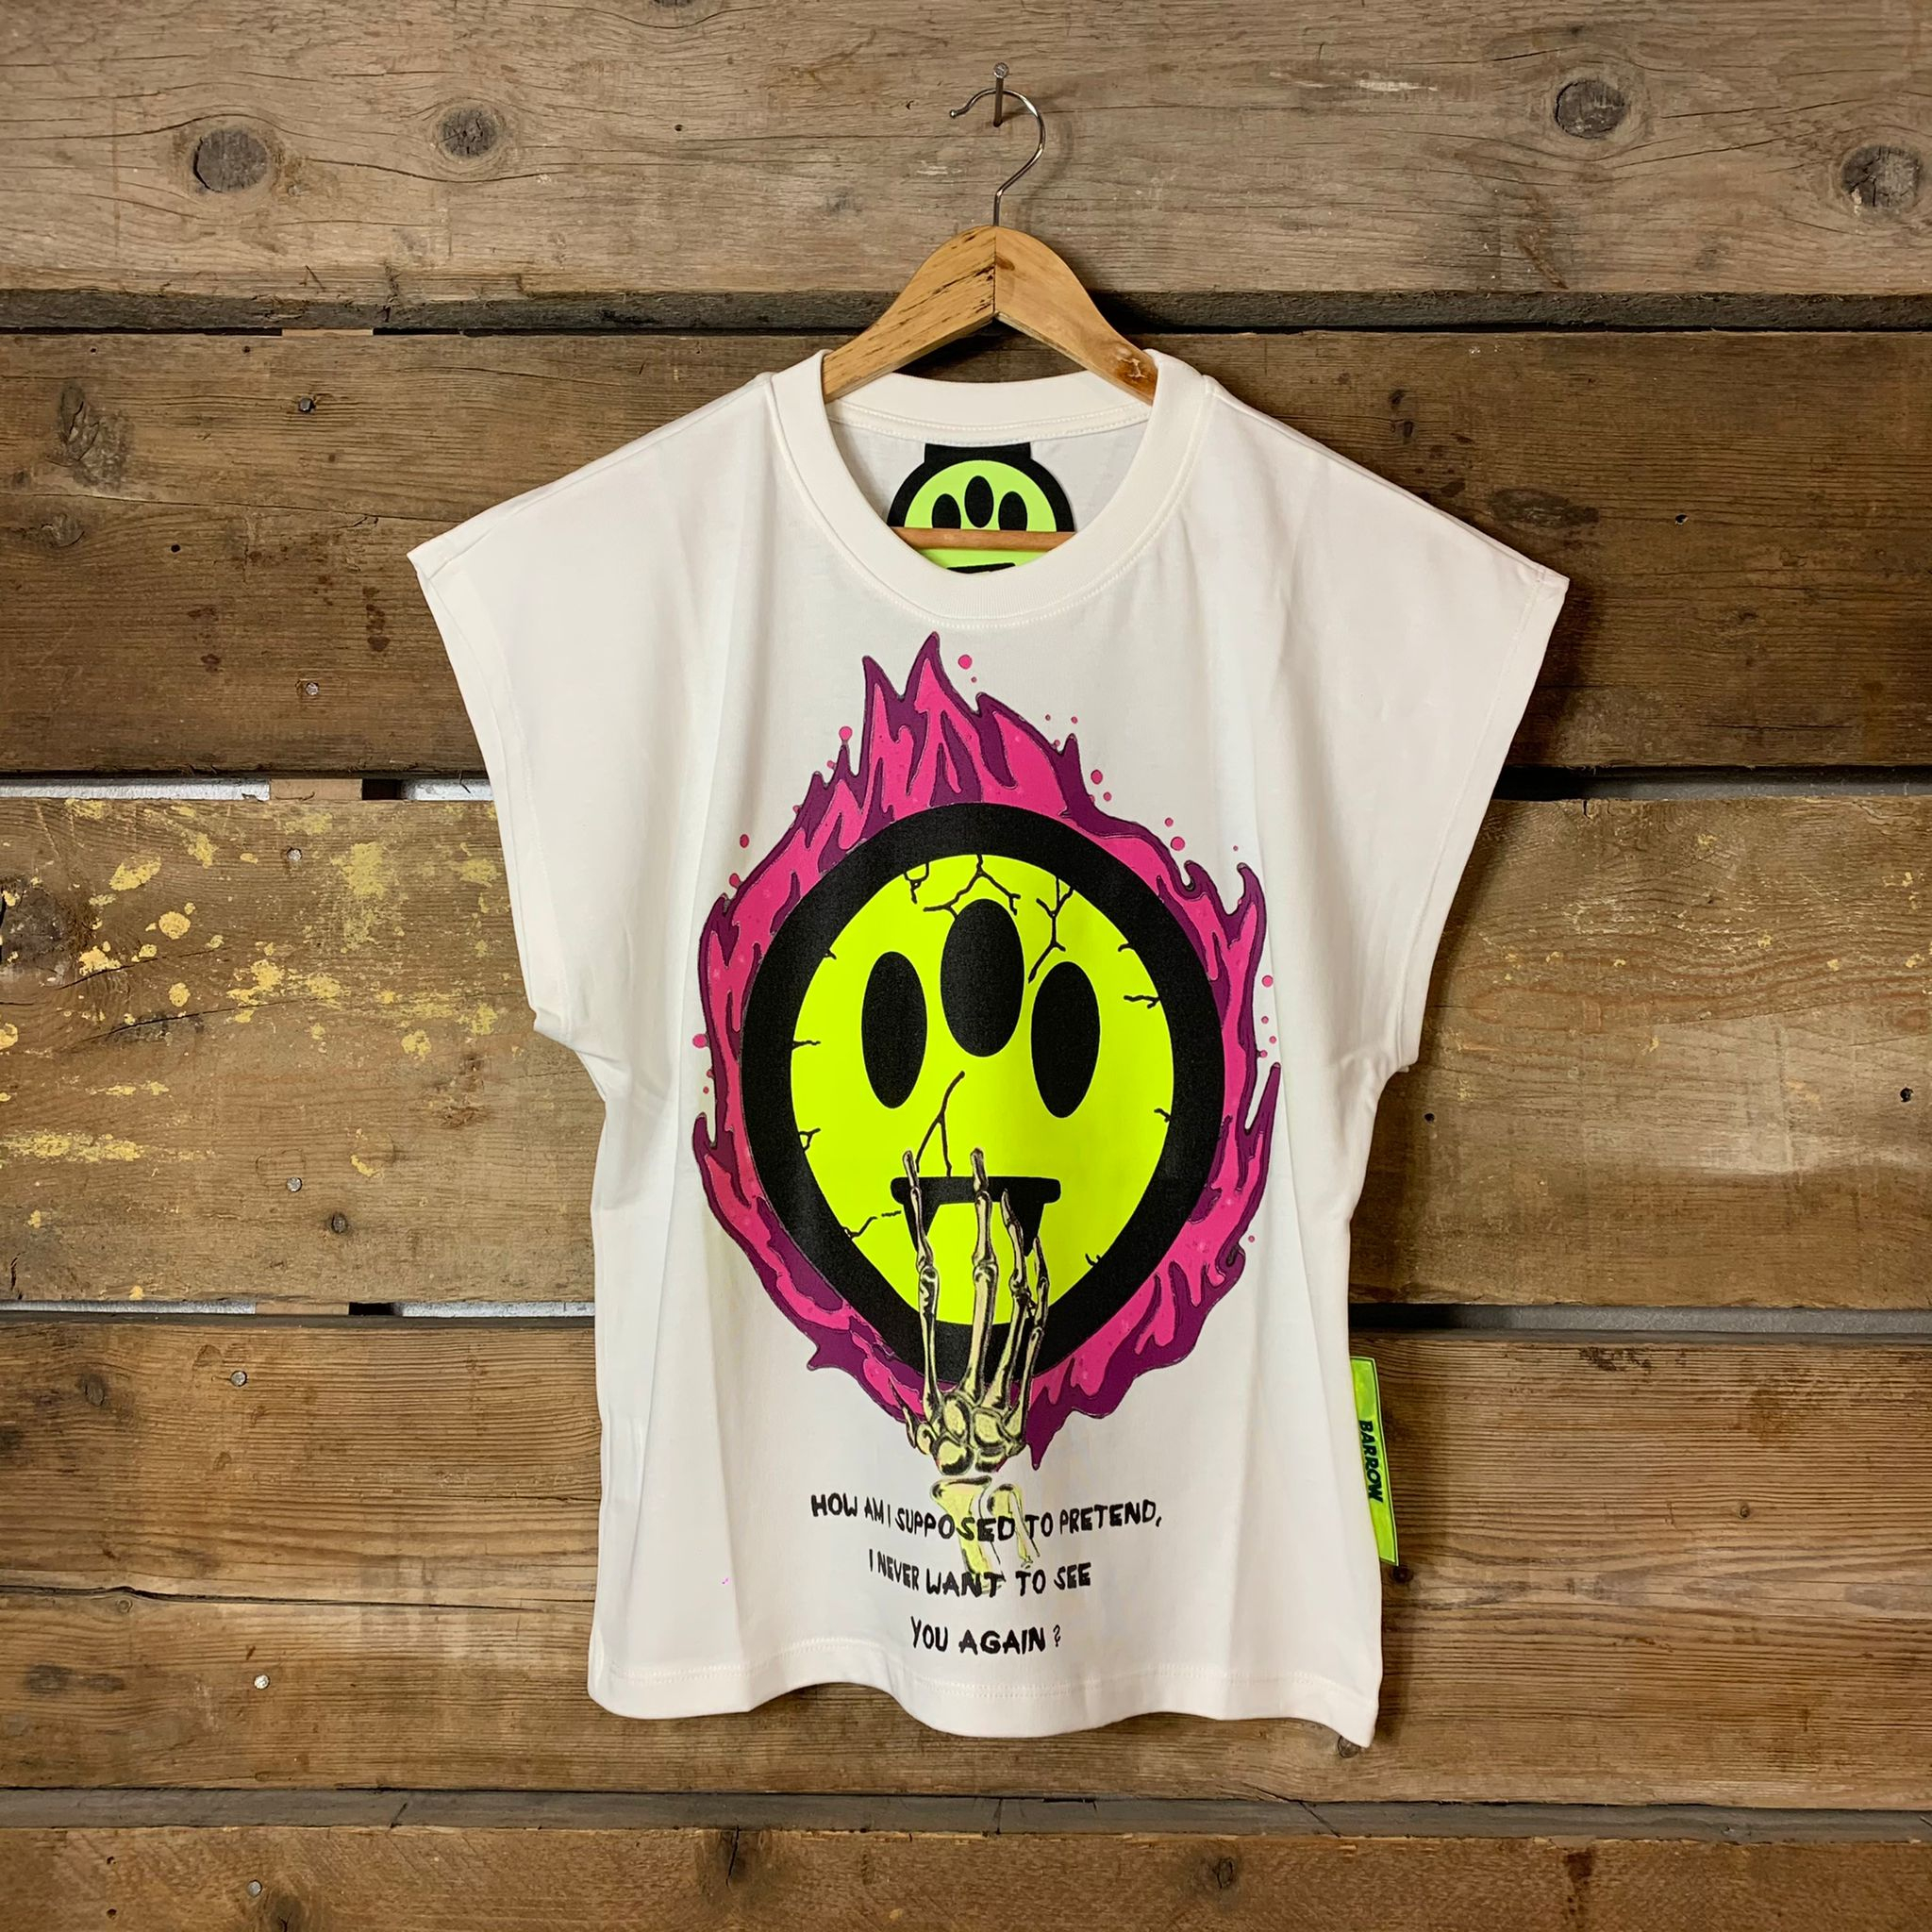 Maglia Barrow Senza Manica Donna Cropped T-Shirt Stampa Smile  Teschio Bianca